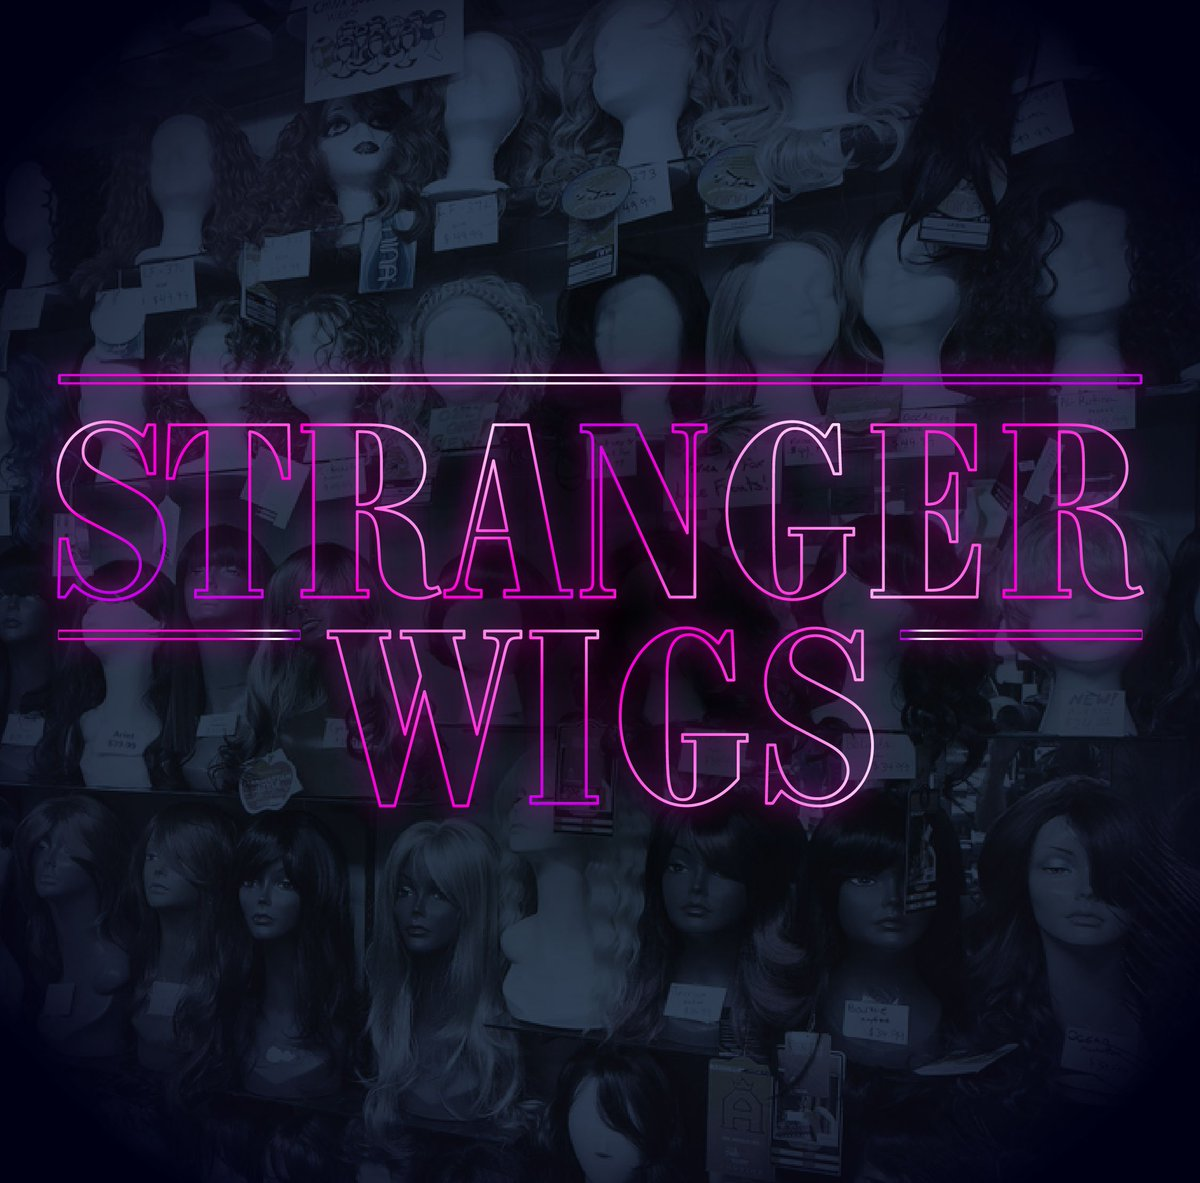 'Stranger Wigs'  Oh y'all wanted to go to the upside down? ☠️ #DragUPA...